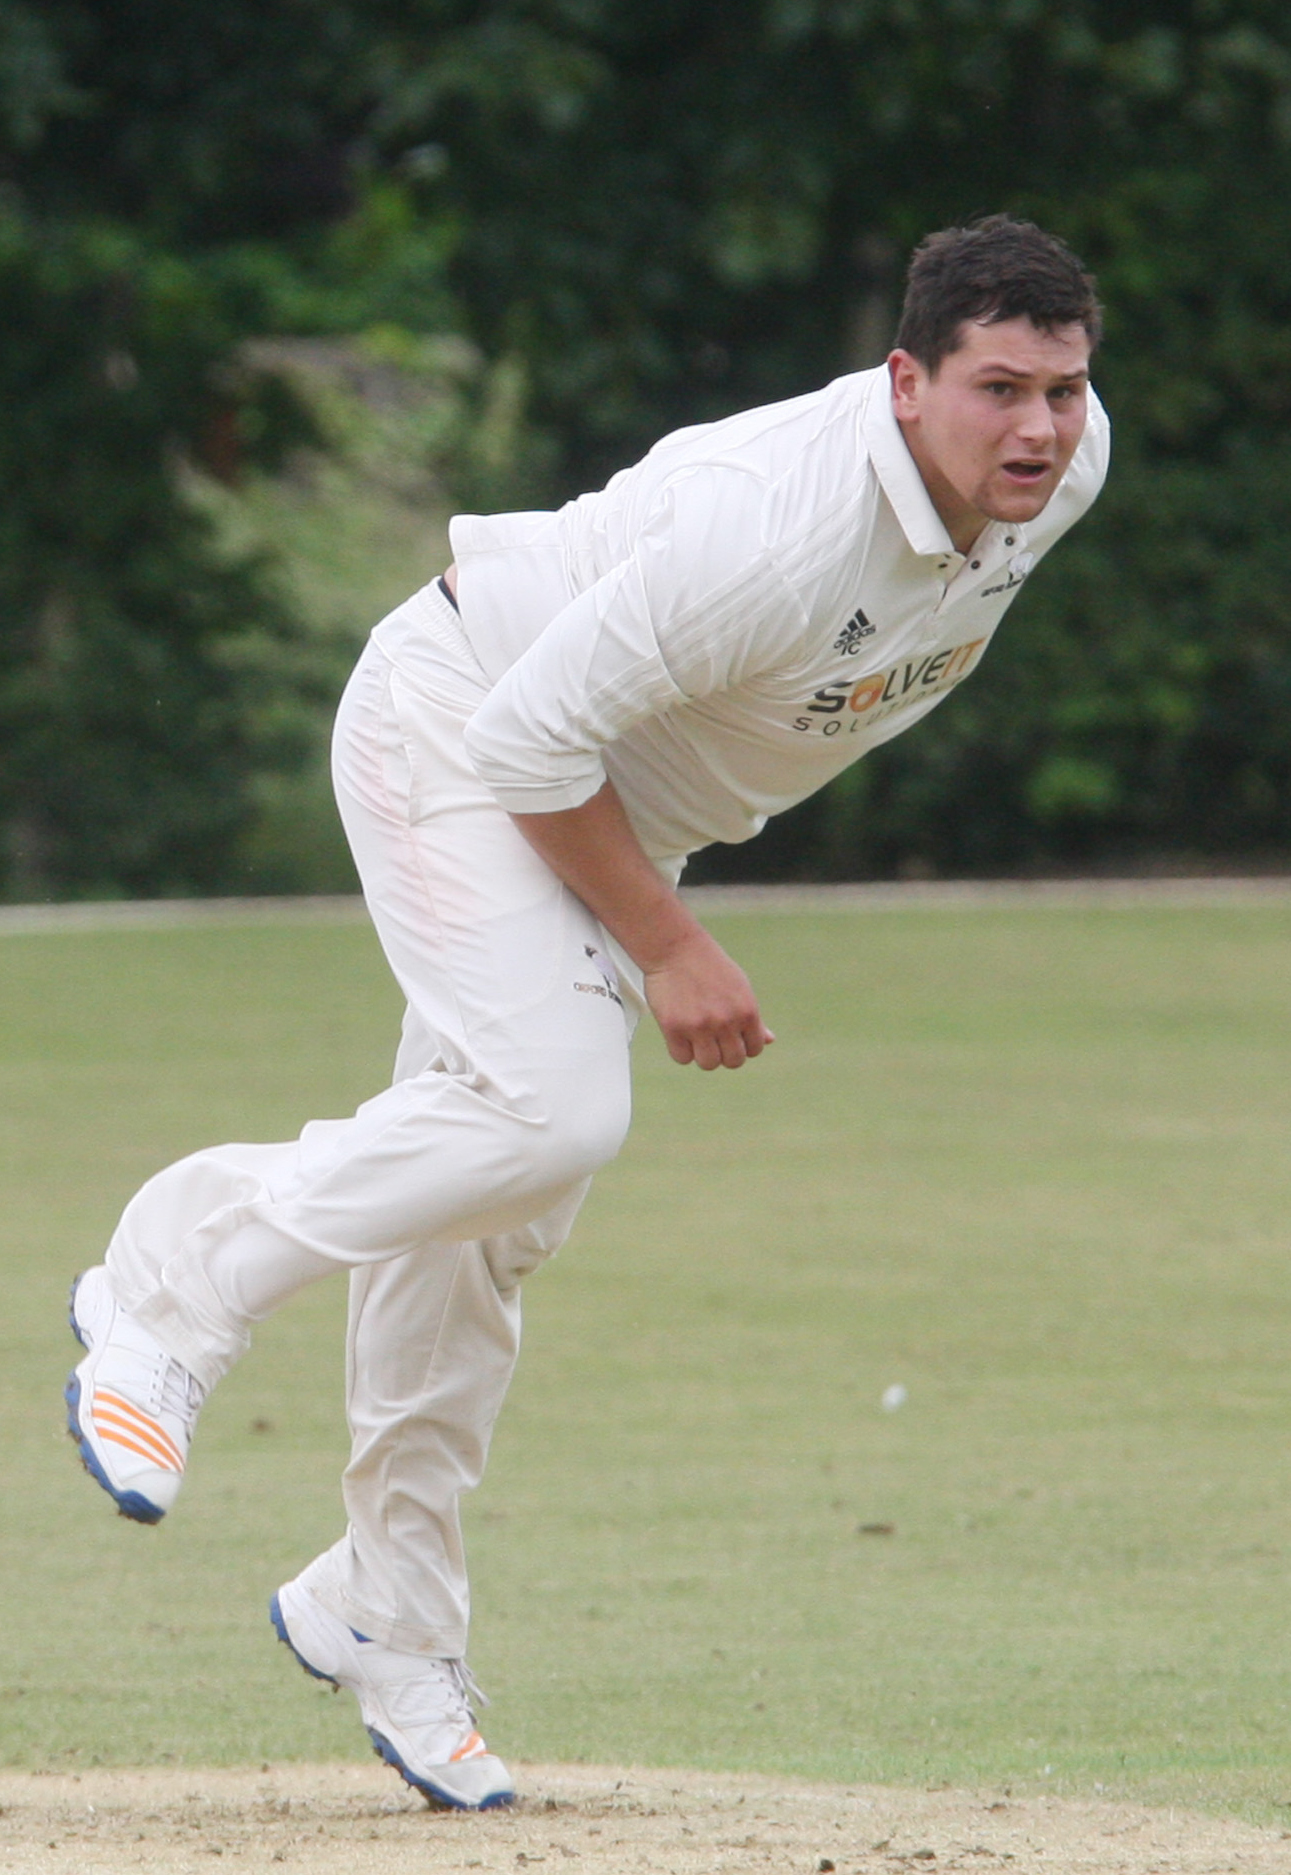 Tom Costley took five wickets and hit 60 not out for Oxford Downs